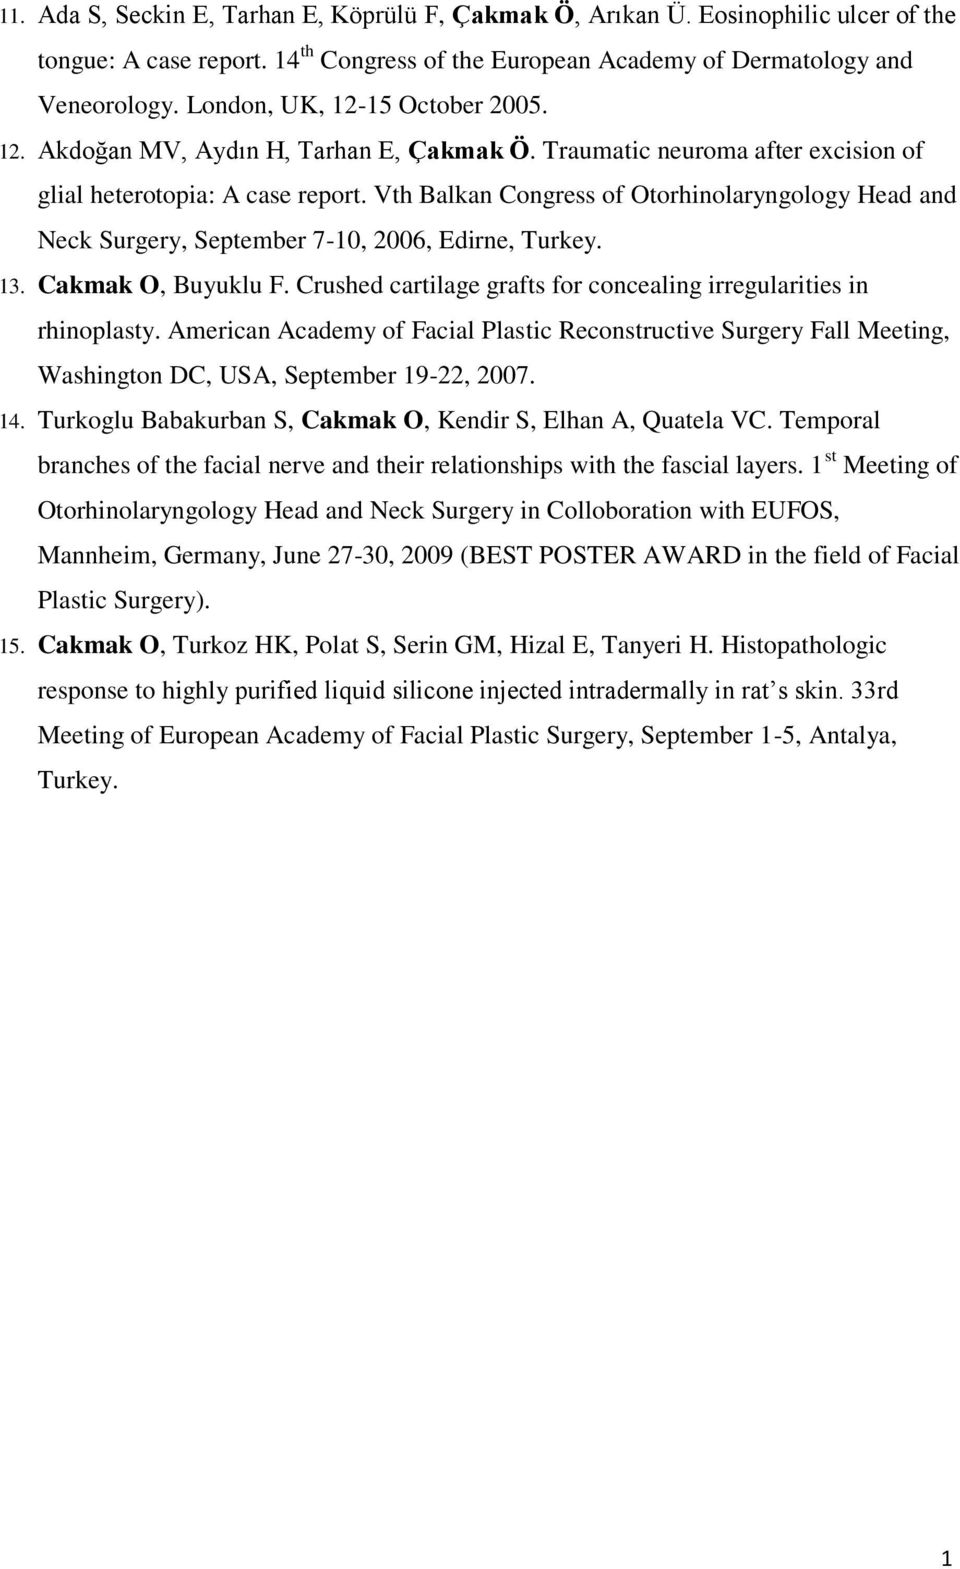 Vth Balkan Congress of Otorhinolaryngology Head and Neck Surgery, September 7-10, 2006, Edirne, Turkey. 13. Cakmak O, Buyuklu F. Crushed cartilage grafts for concealing irregularities in rhinoplasty.